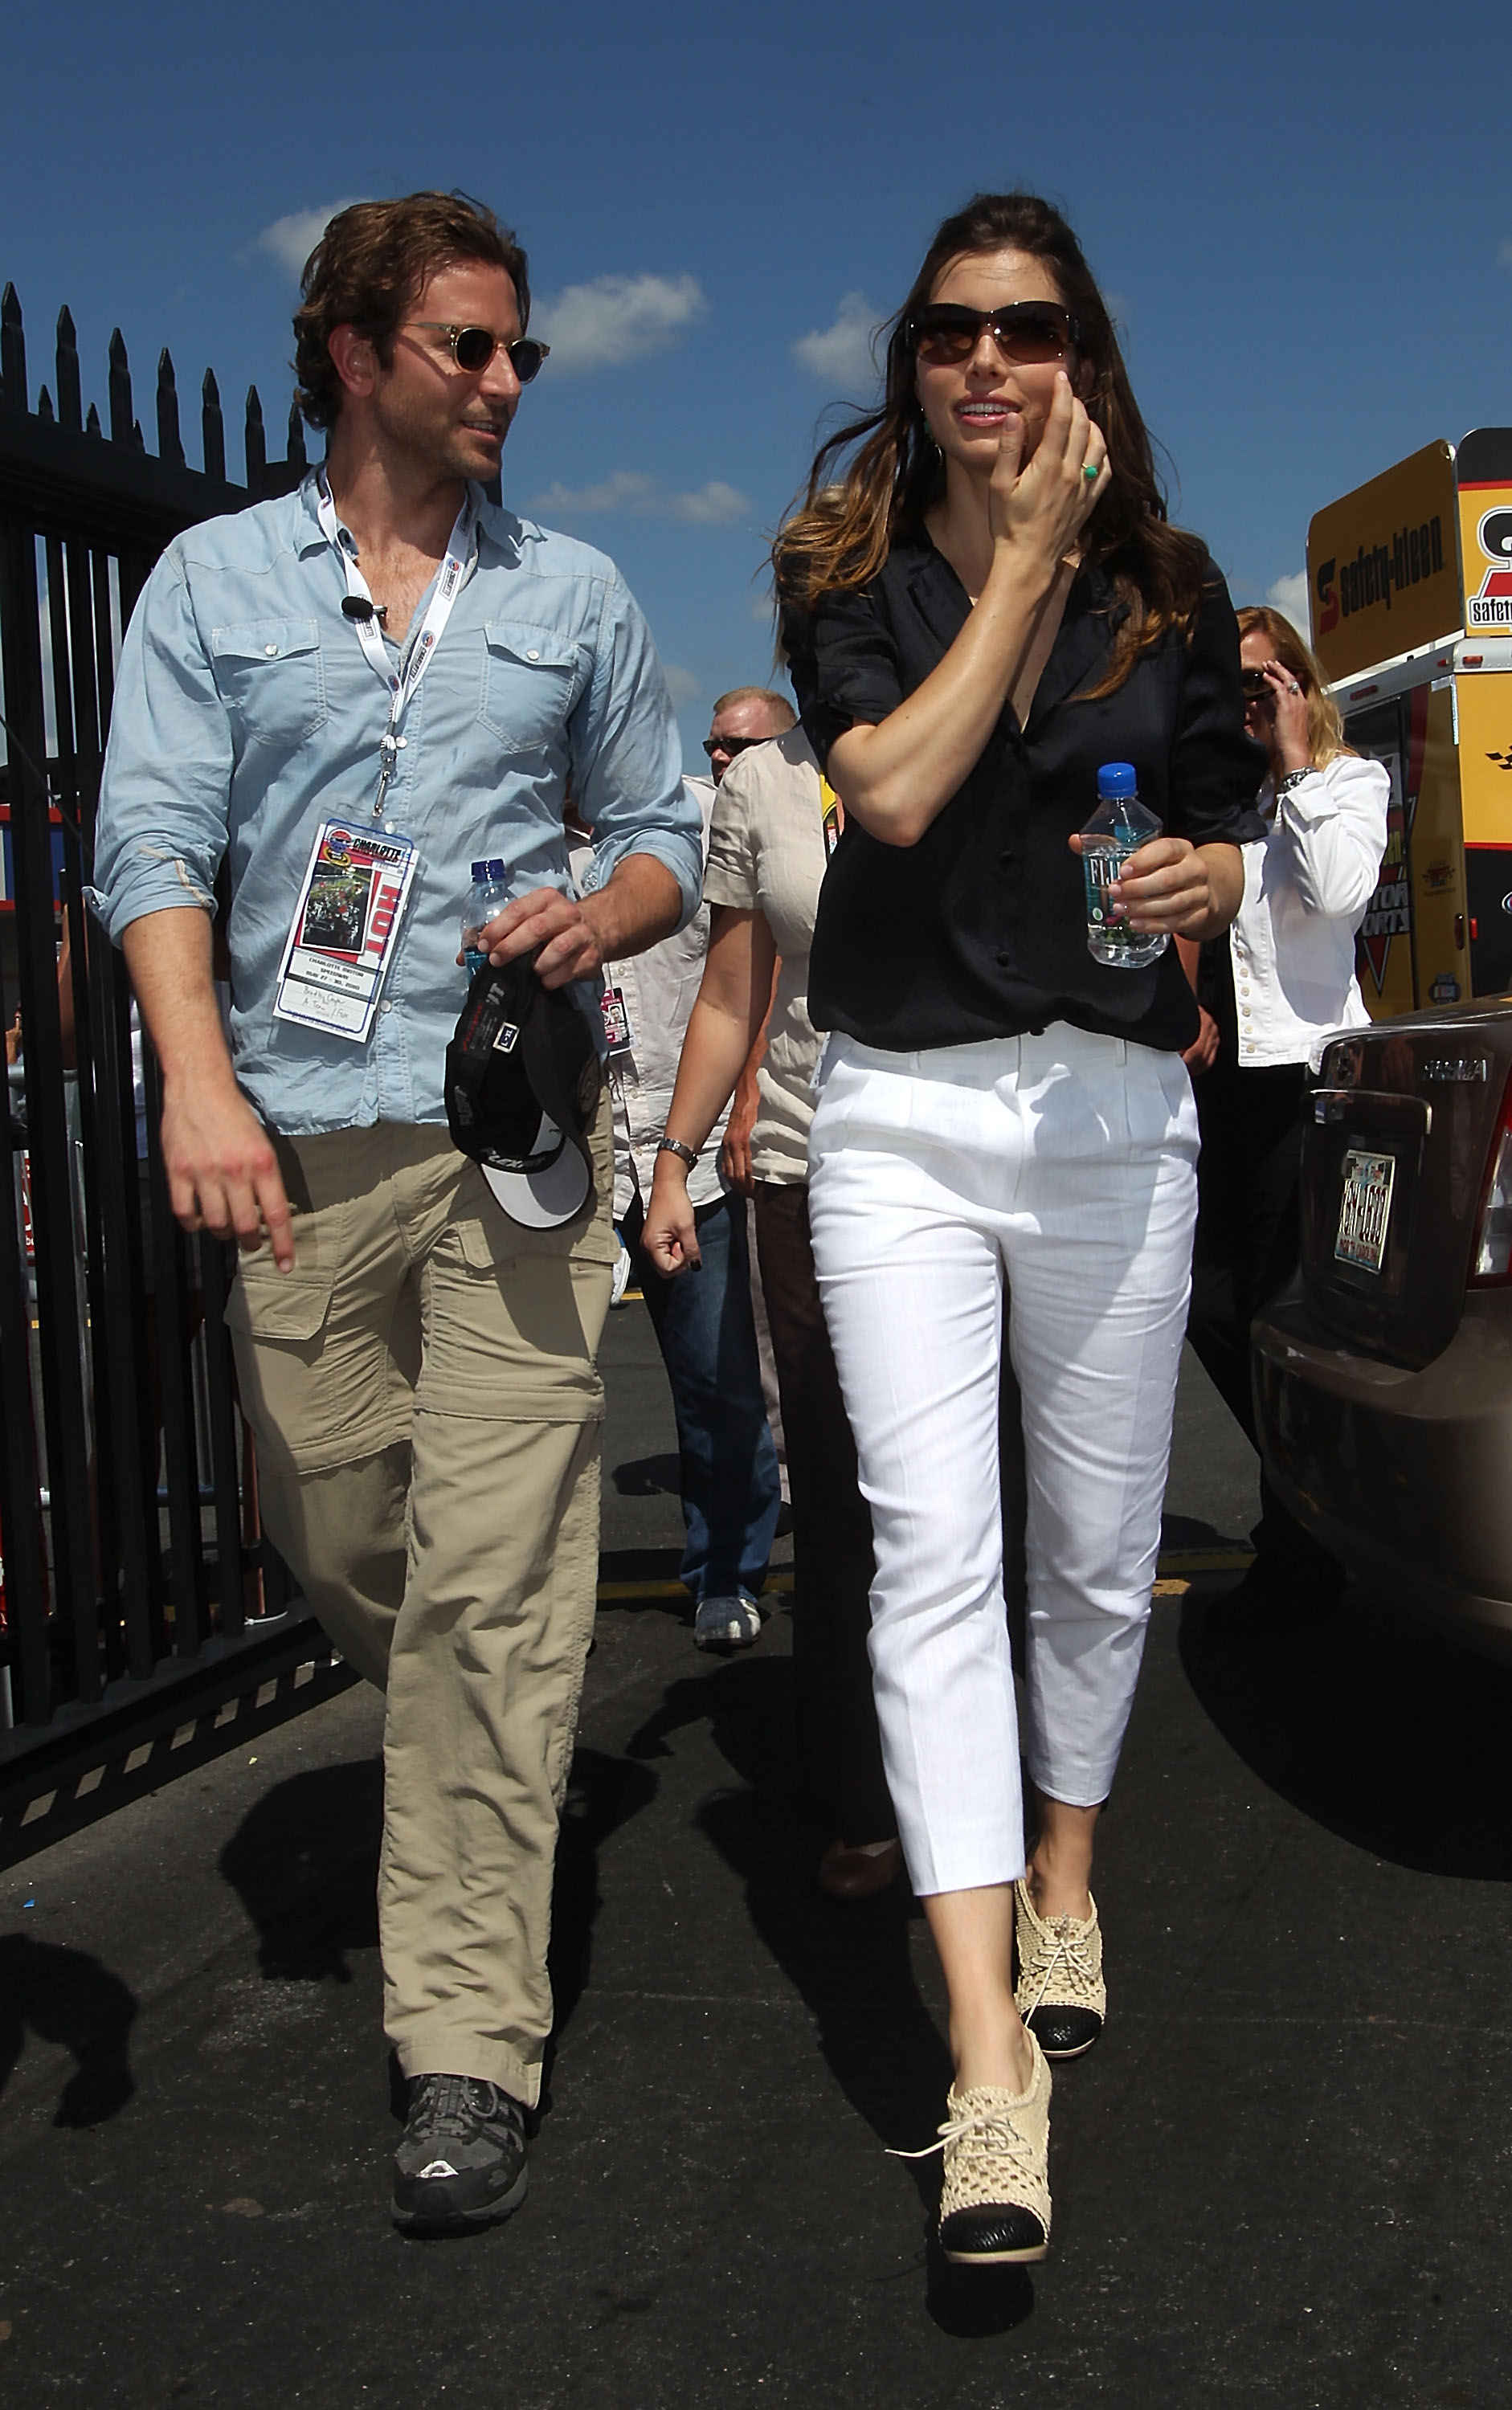 Jessica and costar Bradley Cooper went to the Coca-Cola 600 race, Jessica looking chic in white cropped pants, a navy top, and Dries van Noten booties. I was this close to buying them at the Barneys Warehouse sale.